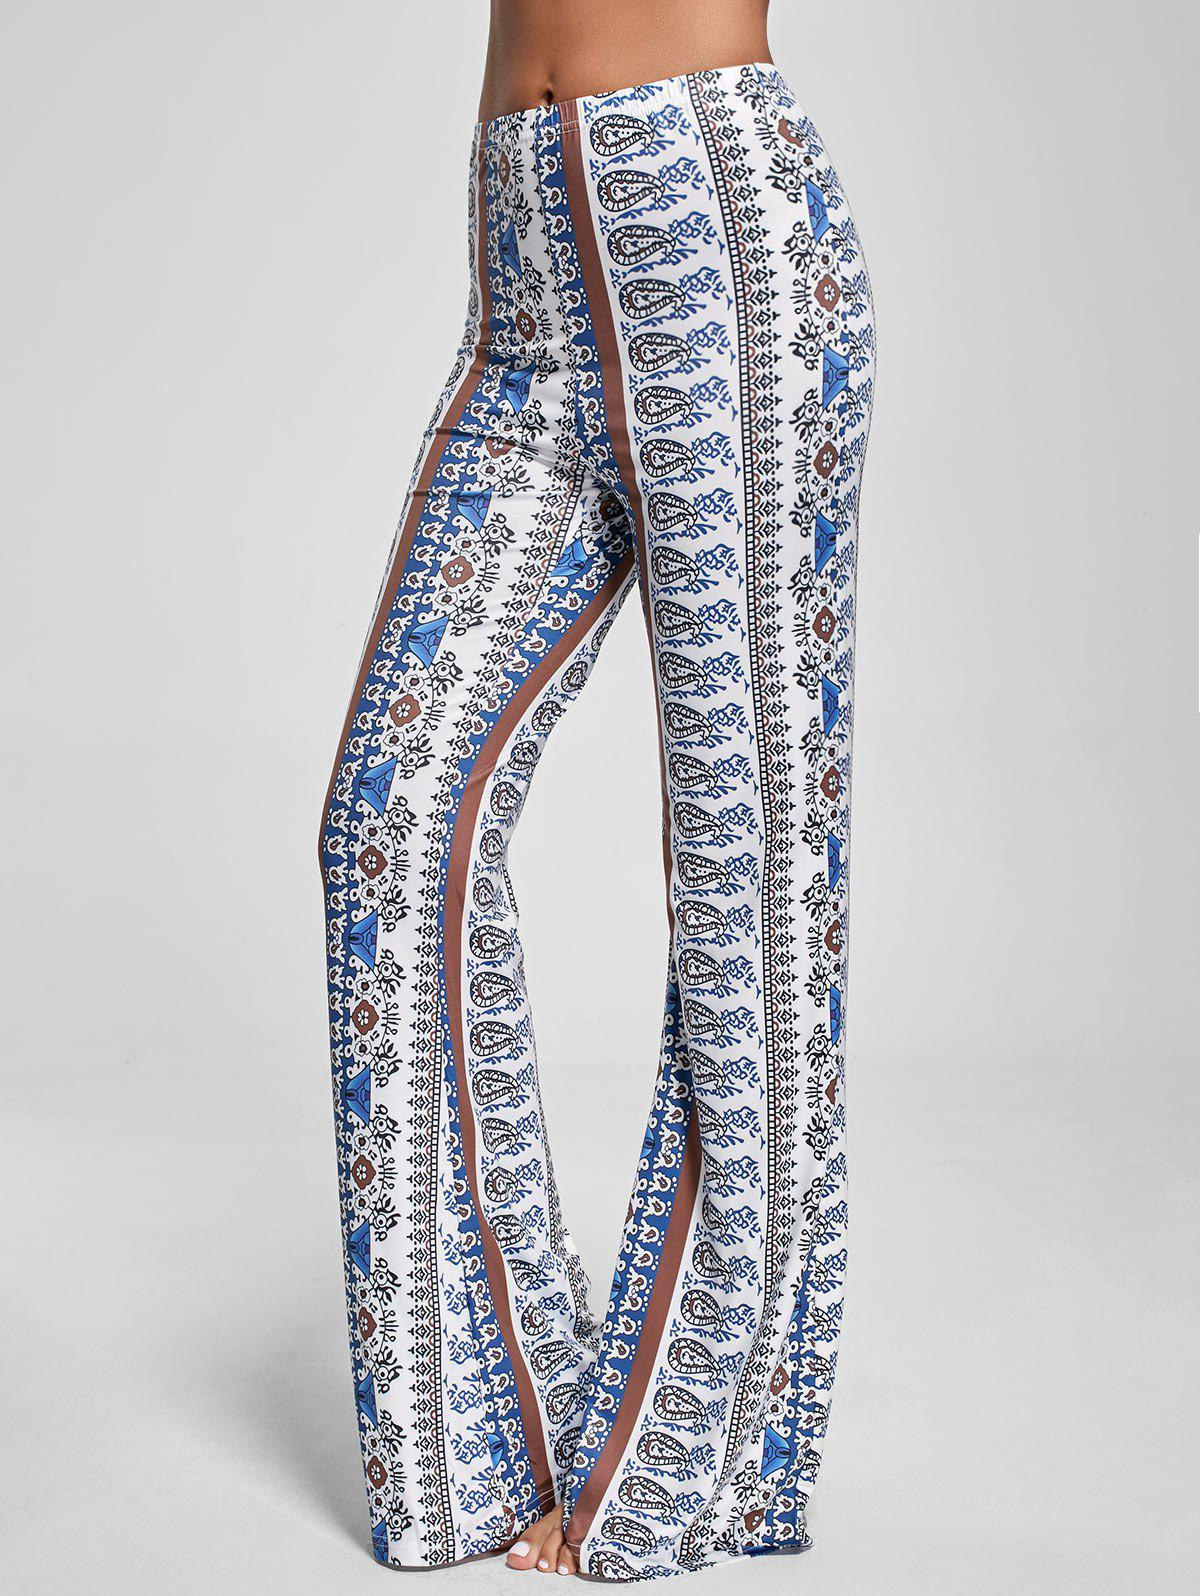 Flare Paisley Print Bohemian PantsWOMEN<br><br>Size: S; Color: WHITE; Style: Casual; Length: Overlength; Material: Polyester; Fit Type: Regular; Waist Type: High; Closure Type: Elastic Waist; Pattern Type: Paisley; Pant Style: Flare Pants; Weight: 0.2600kg; Package Contents: 1 x Pants;